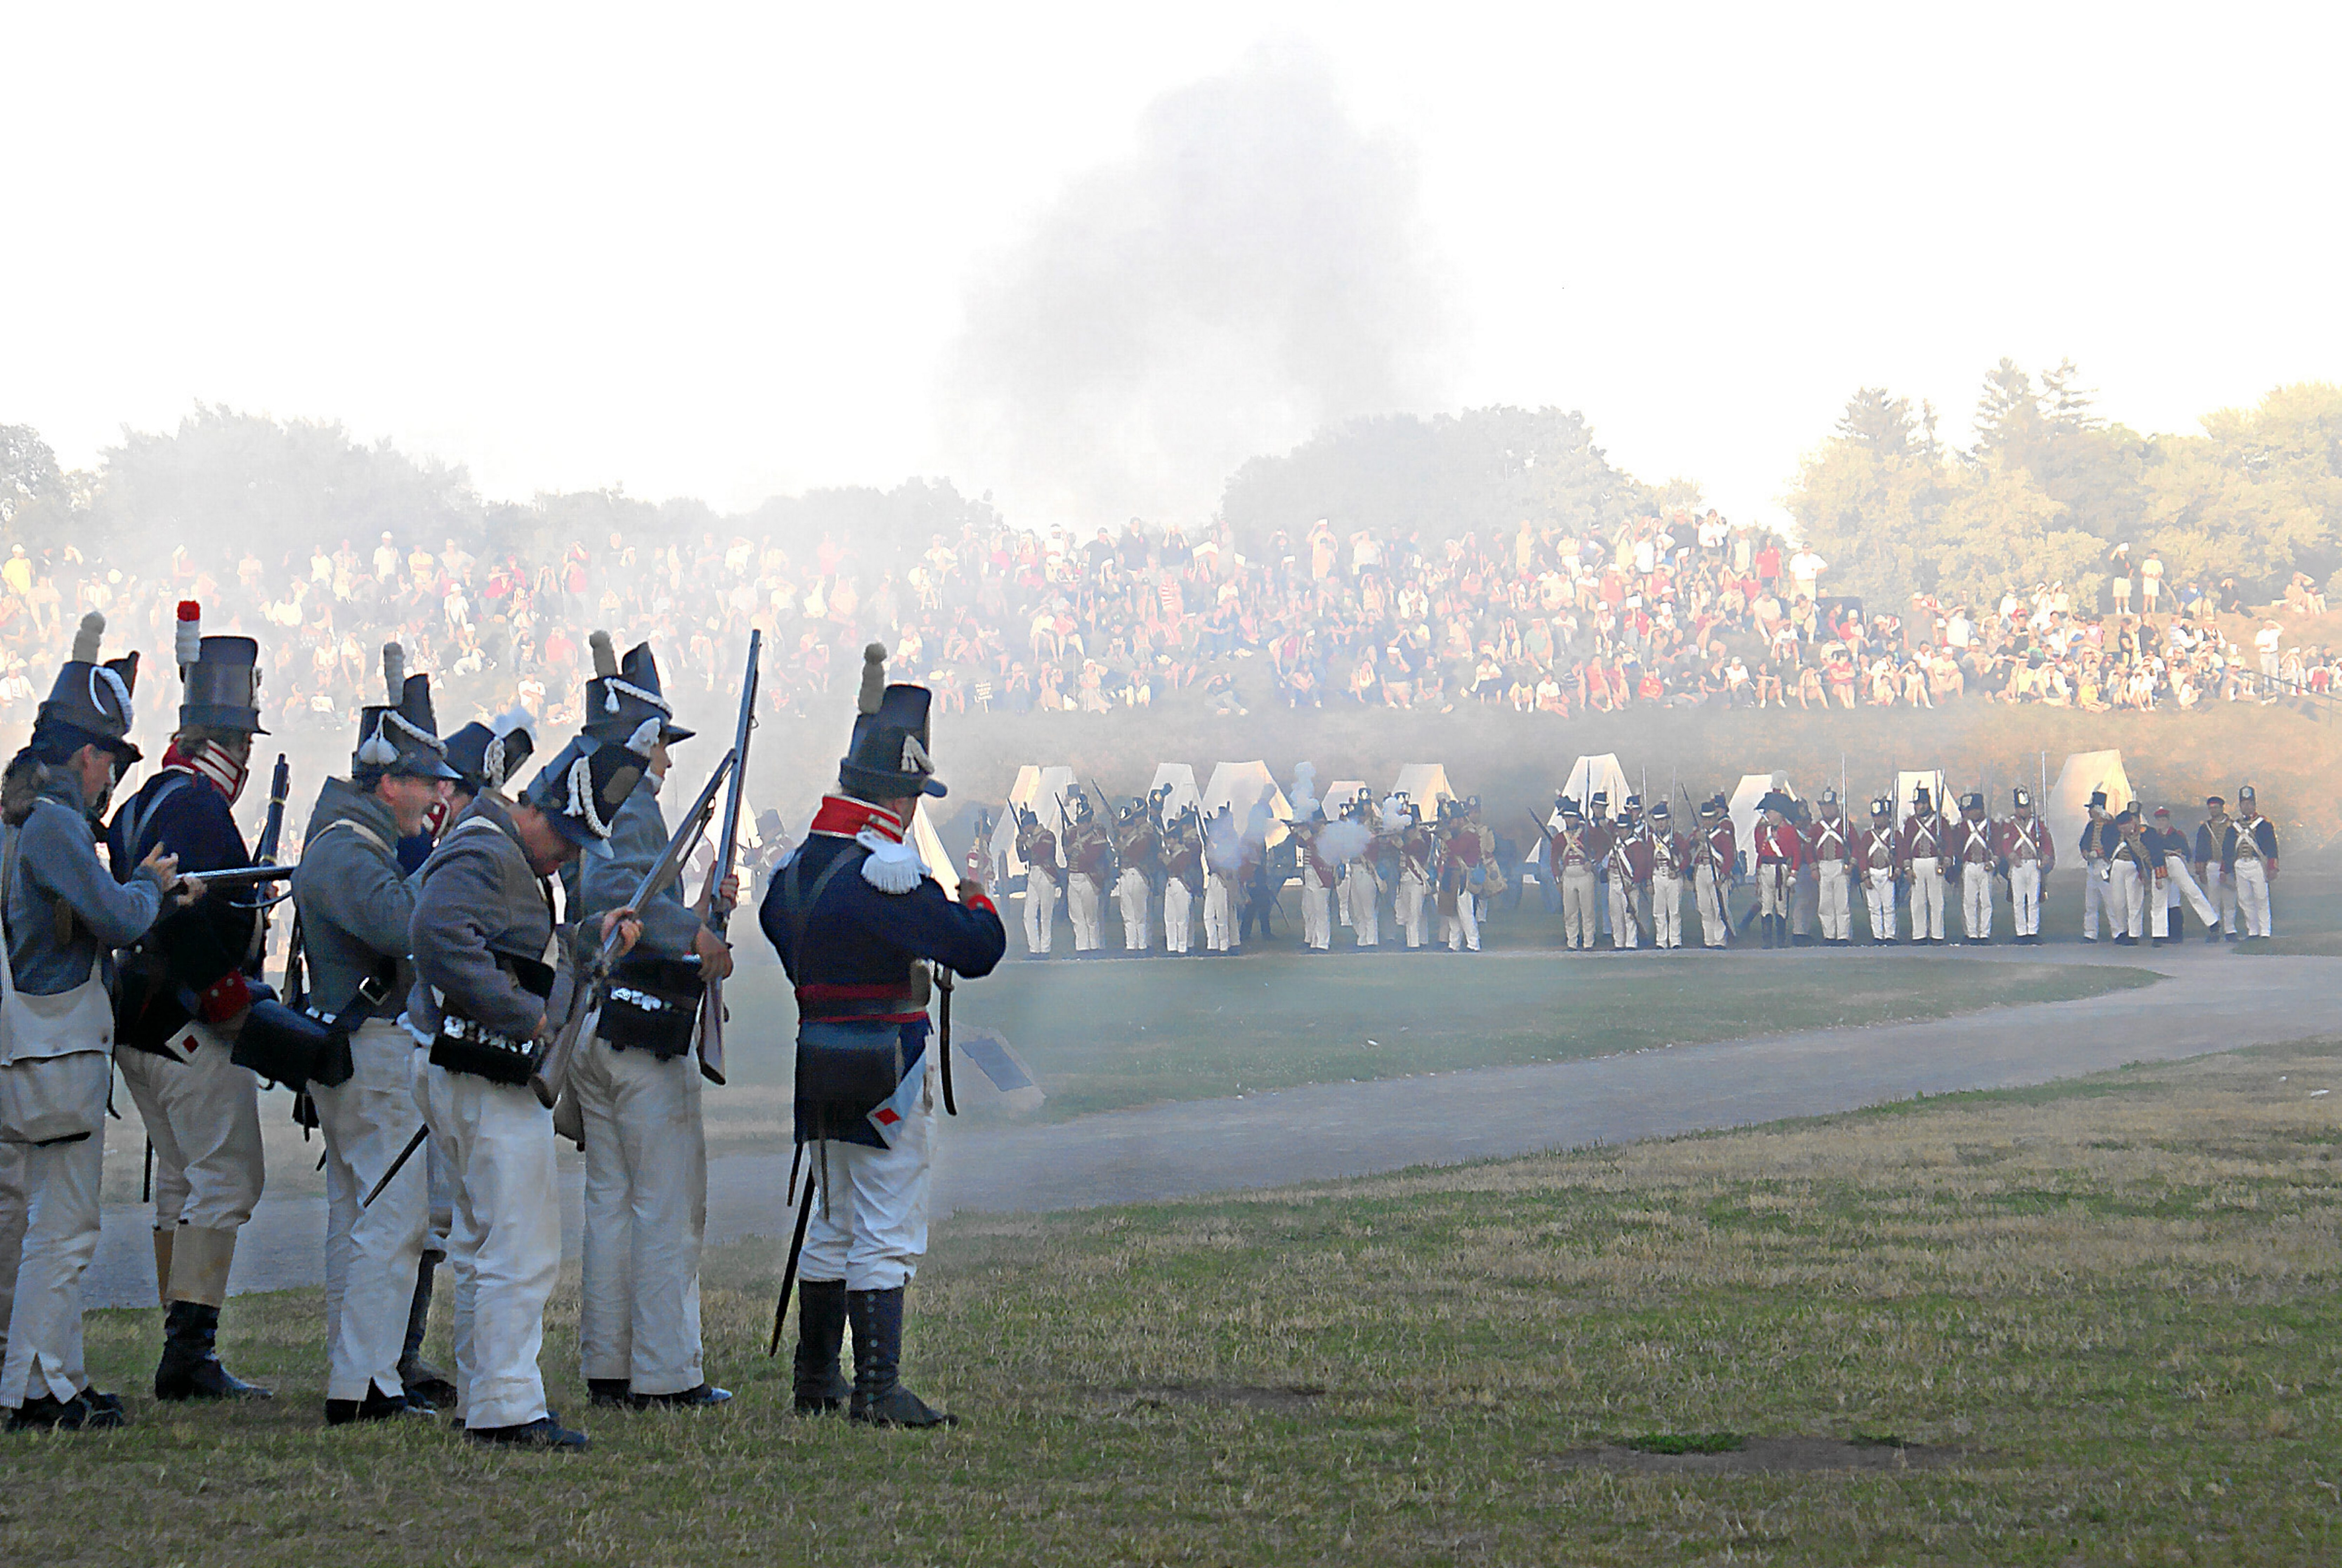 The re-enactment will cover the same ground as the original attack in 1813.